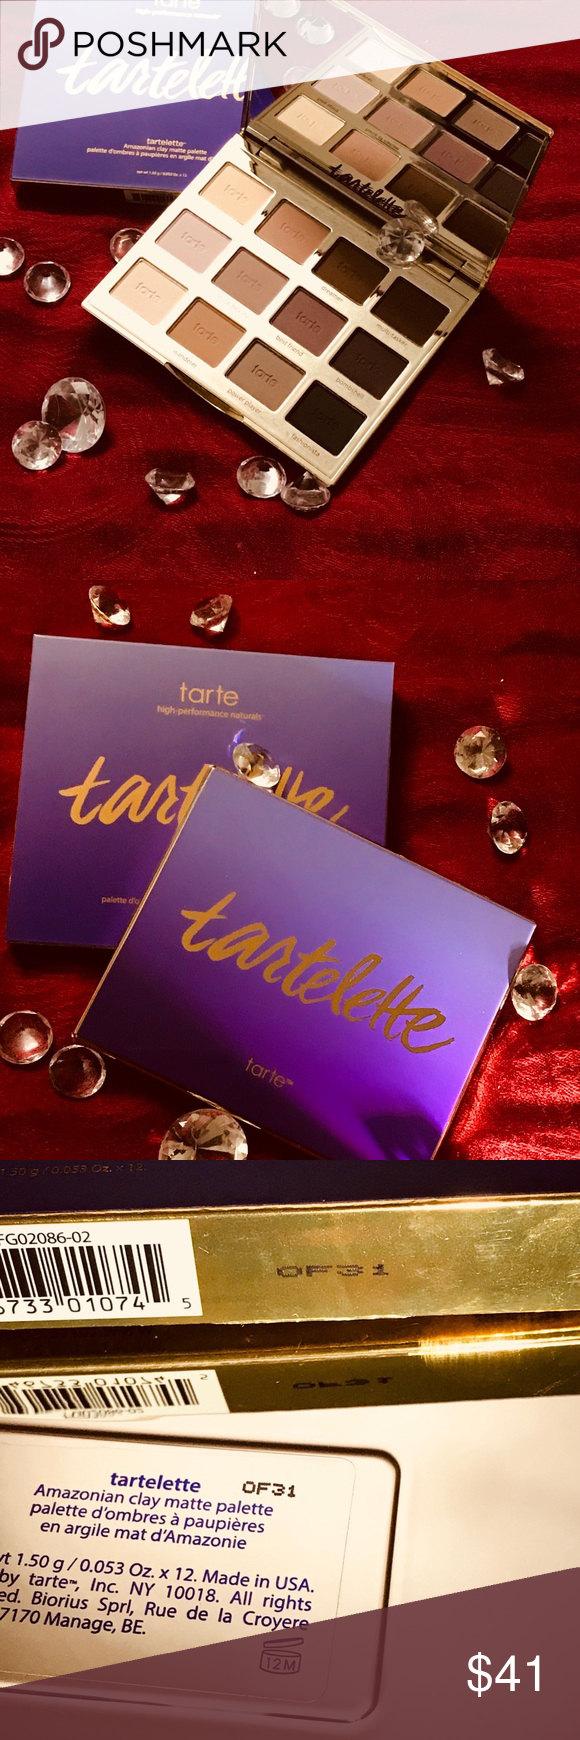 Tartellete Powdwe 100 Authentic An Everyday Eyeshadow Palette With 12 All Matte Shades That Are Anything But Bas Everyday Eyeshadow Eyebrow Makeup Tarte Makeup